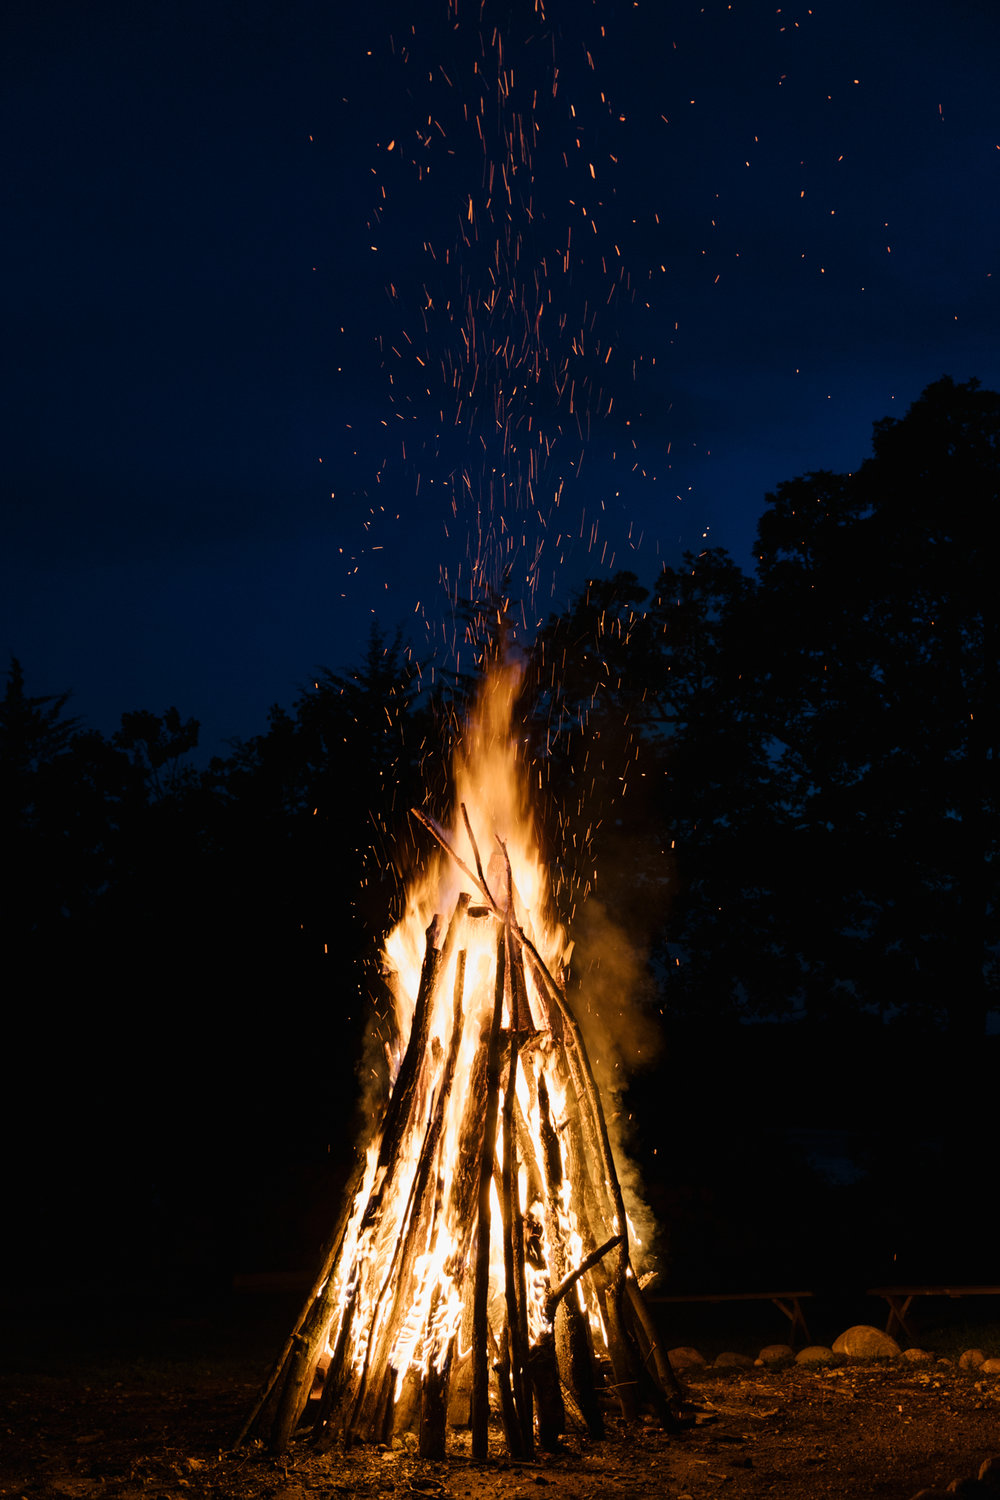 A photo of a giant summer bonfire at  Camp Wandawega  in Elkhorn, Wisconsin during Let's Camp 2018 photographed for  Driftless magazine  and hosted by  The Glossary  and  Feminest .